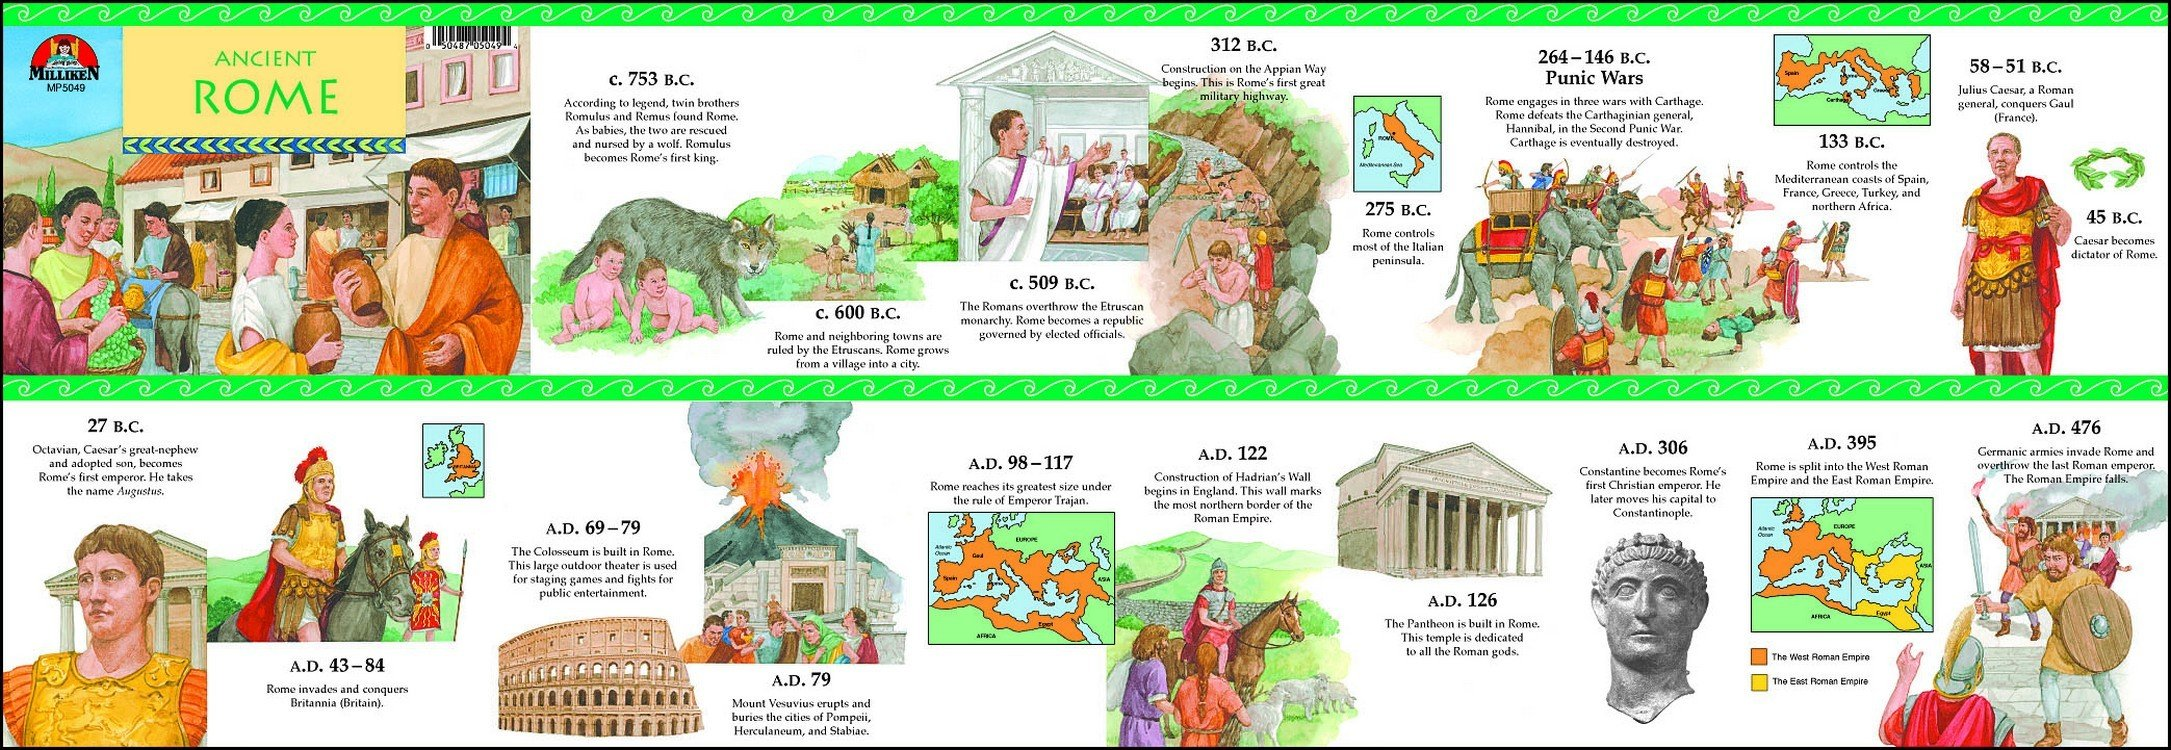 The History of the Ancient Chinese Civilization